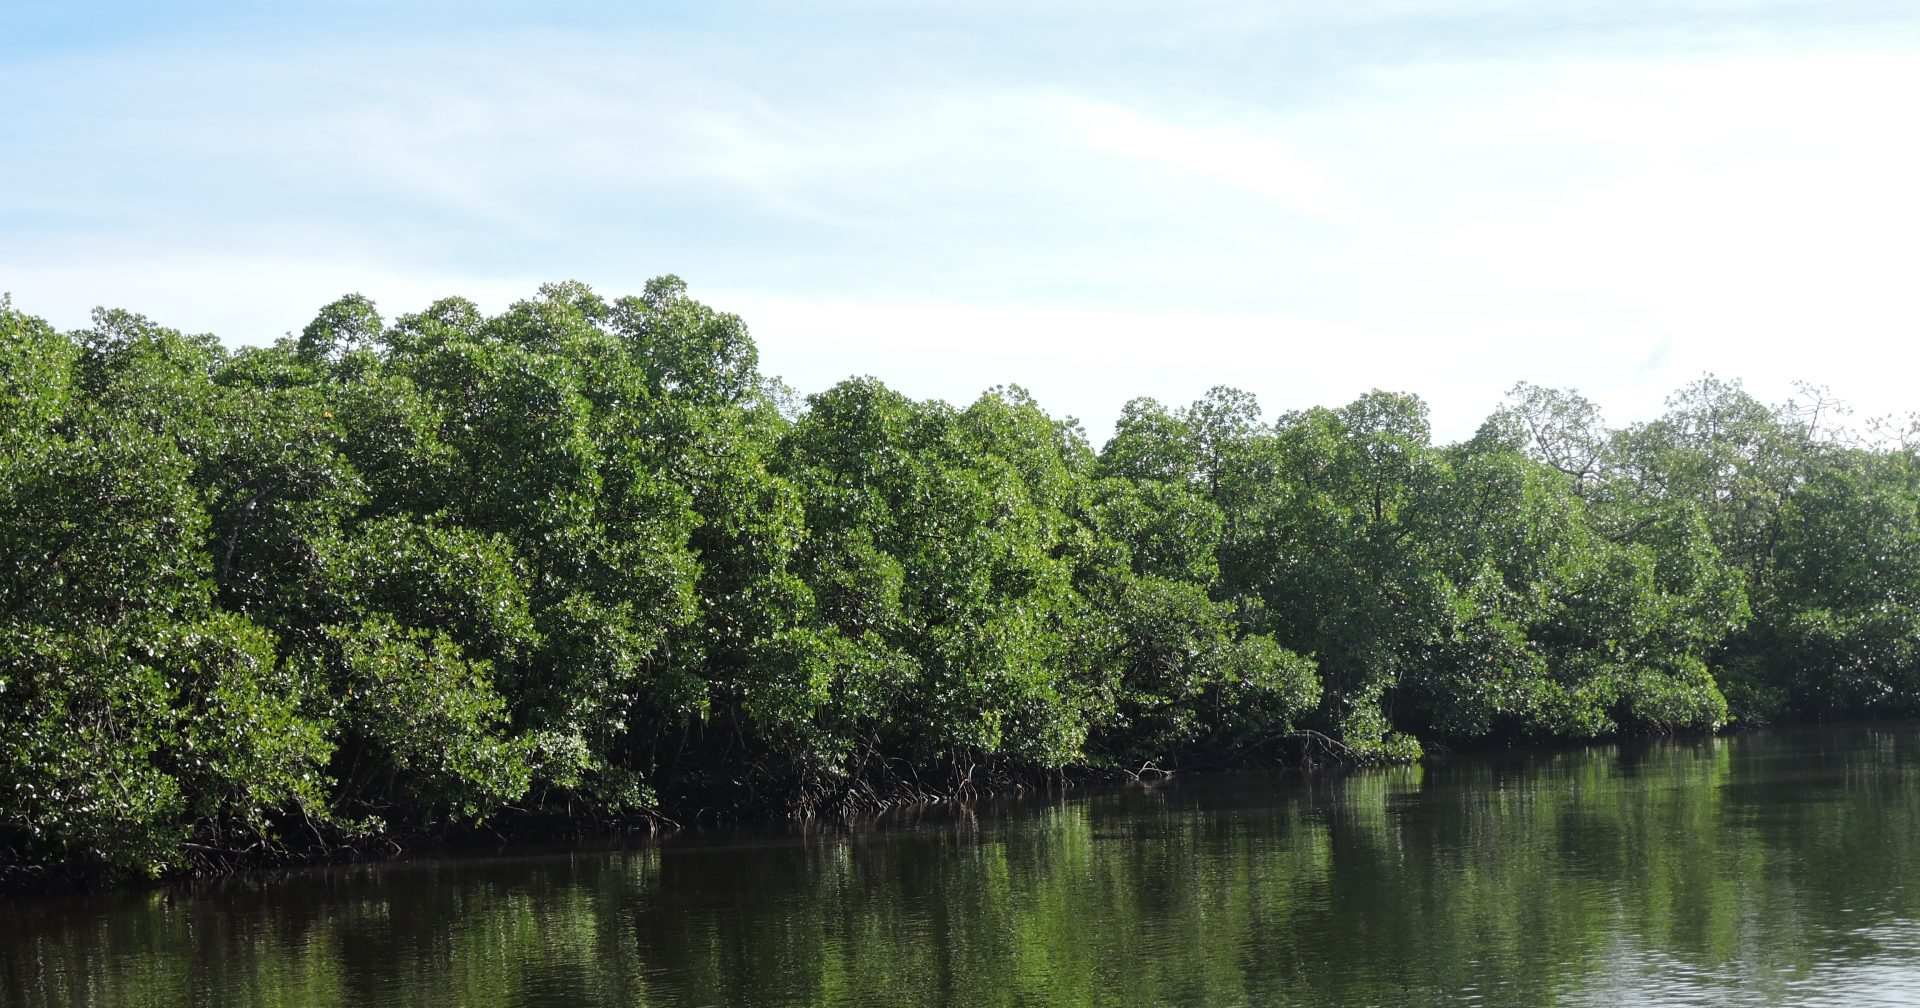 INTERNATIONAL CONFERENCE ON TROPICAL SILVICULTURE